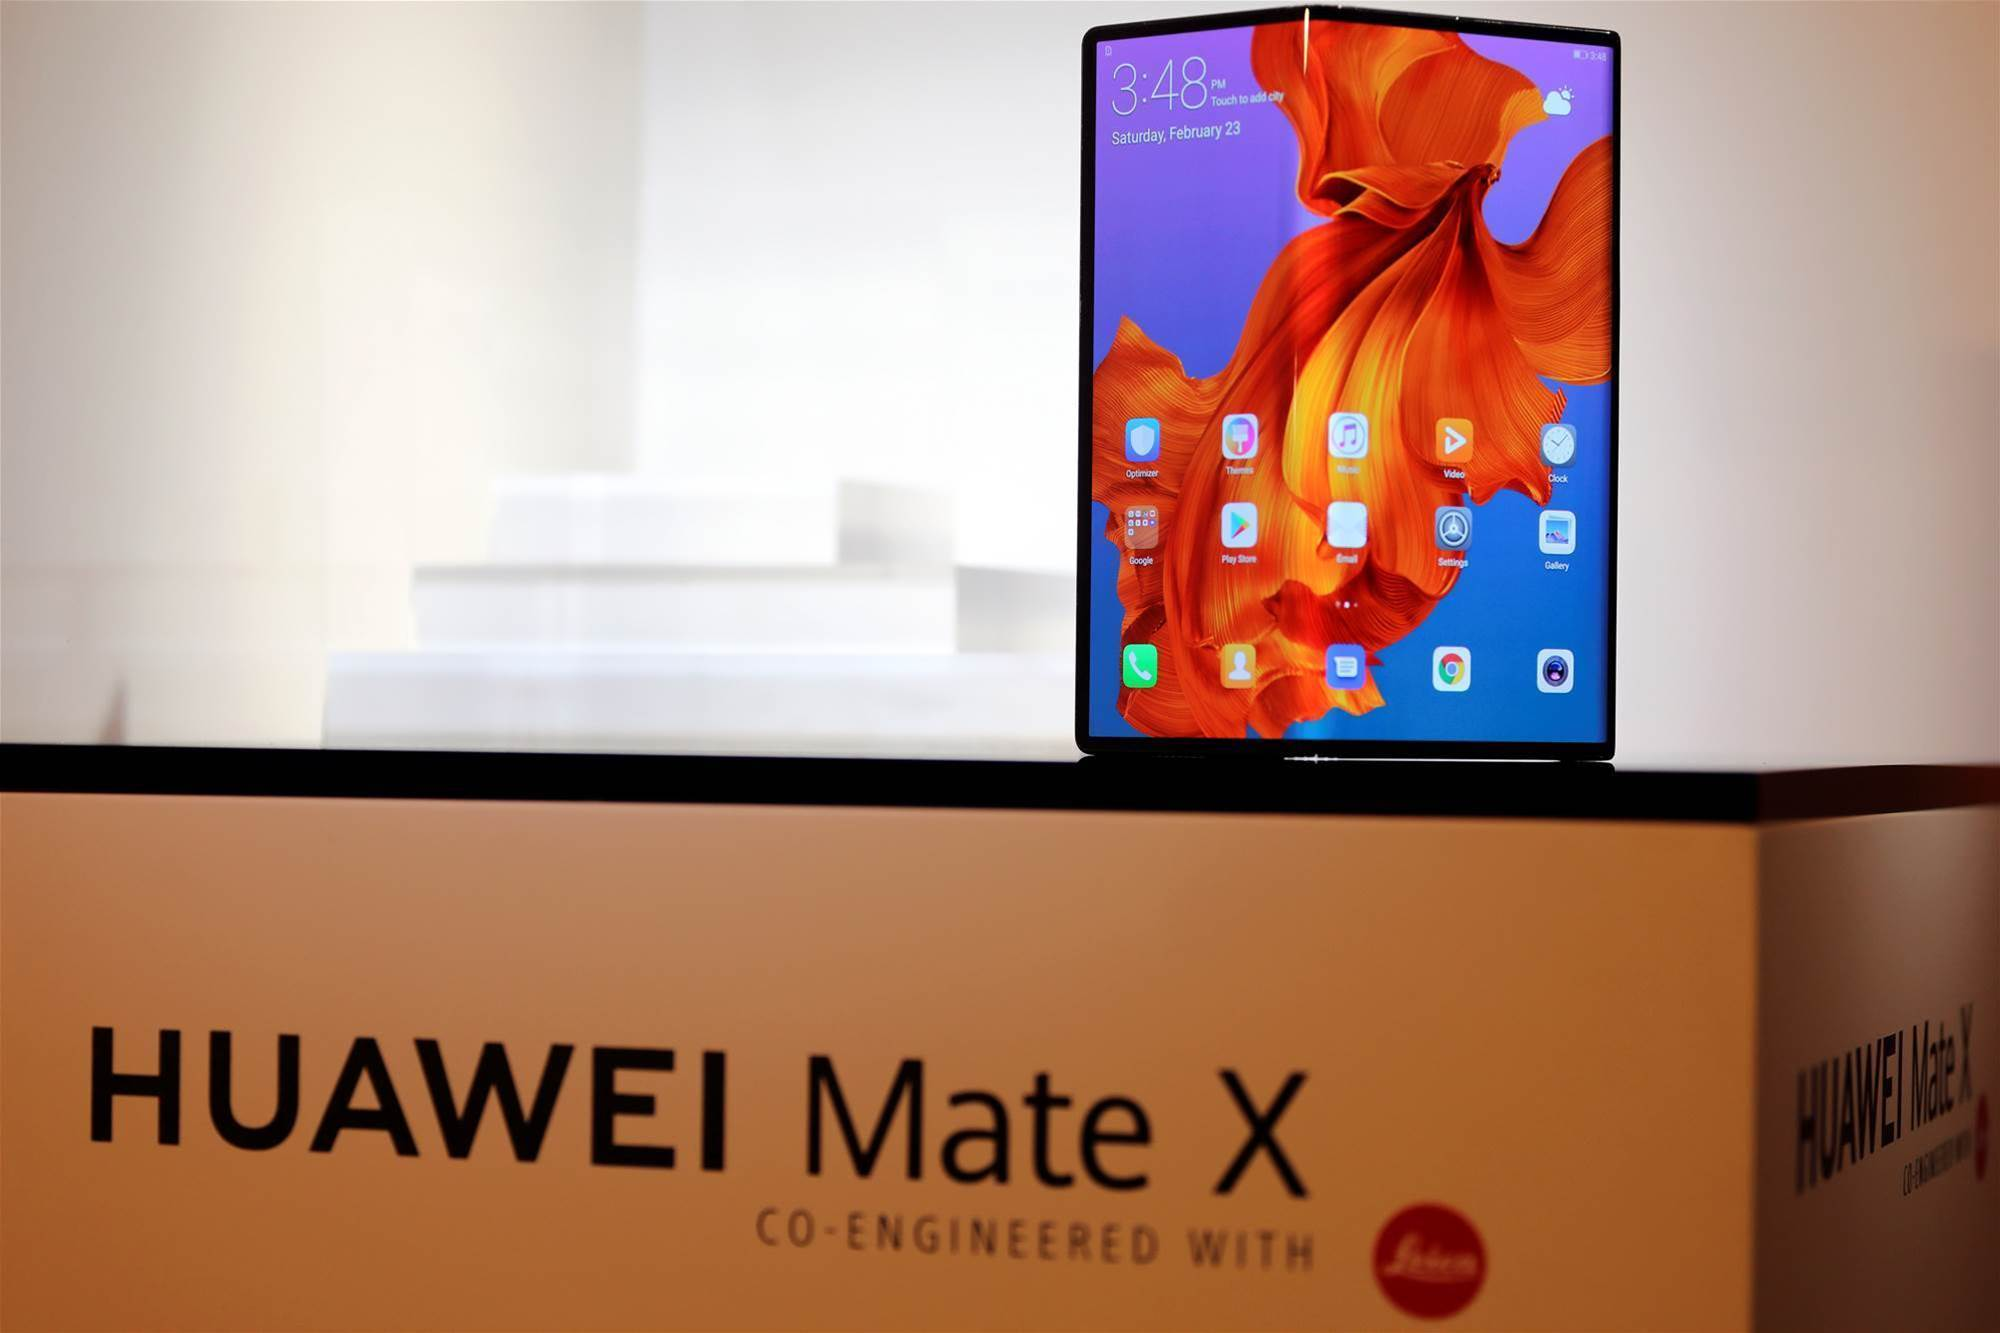 Europe calls for facts not fears in Huawei row